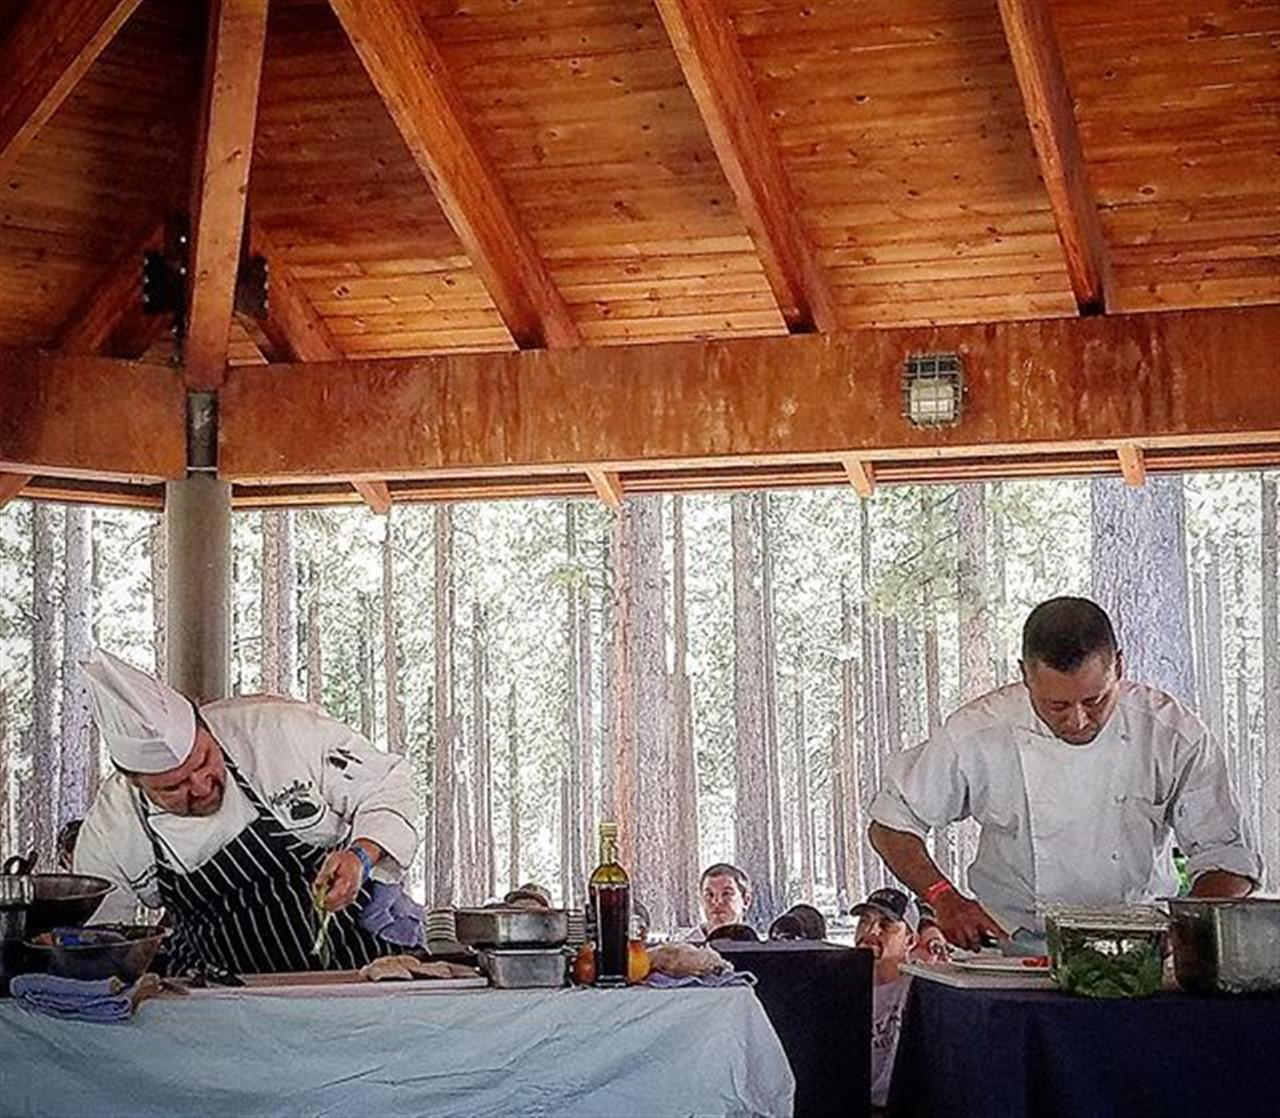 When two of the best chefs you've ever worked with compete against each other in a event! Ken Druley and Jimi Nakamatsu. Love these two chefs!   #southlaketahoe #laketahoerestaurants  #tahoechefs #mirrabelle